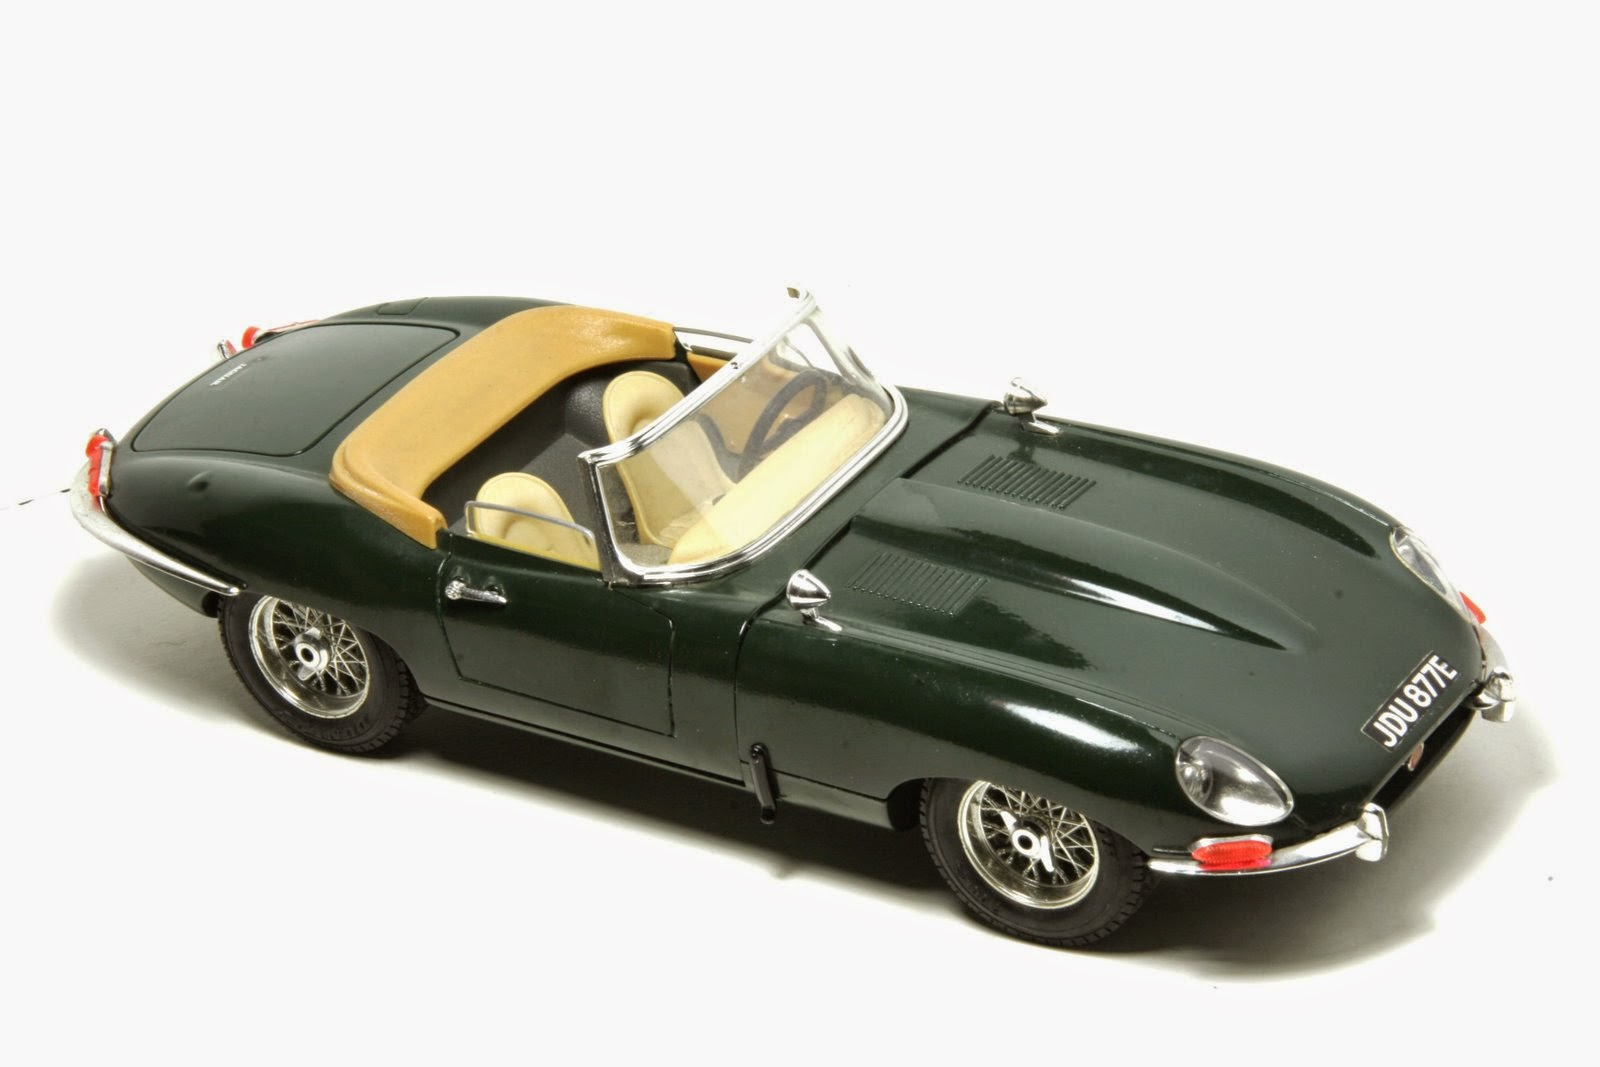 1/18 Bburago 1961 Jaguar E Type Convertible